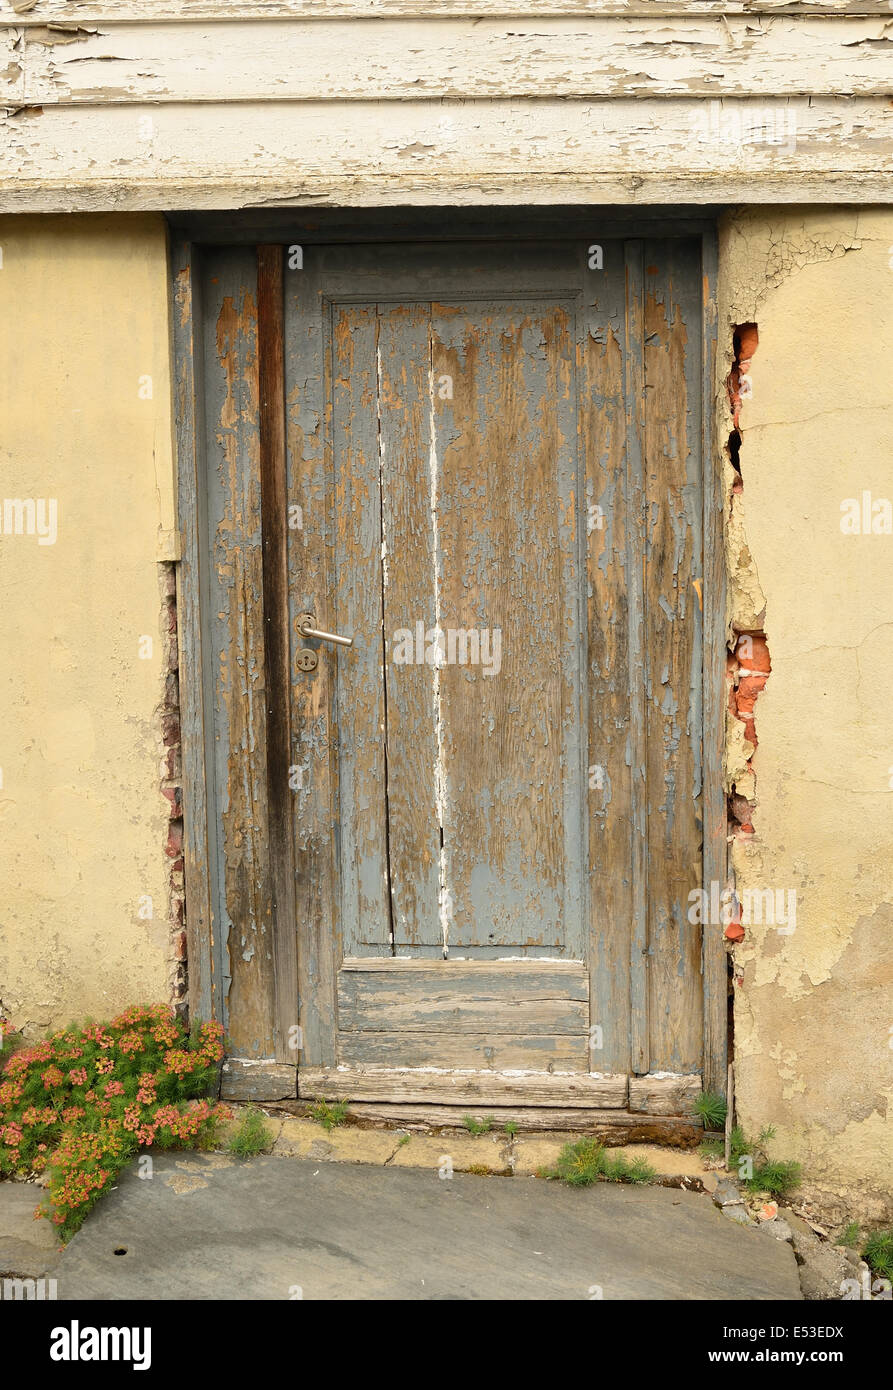 Old door in need of repair. - Stock Image